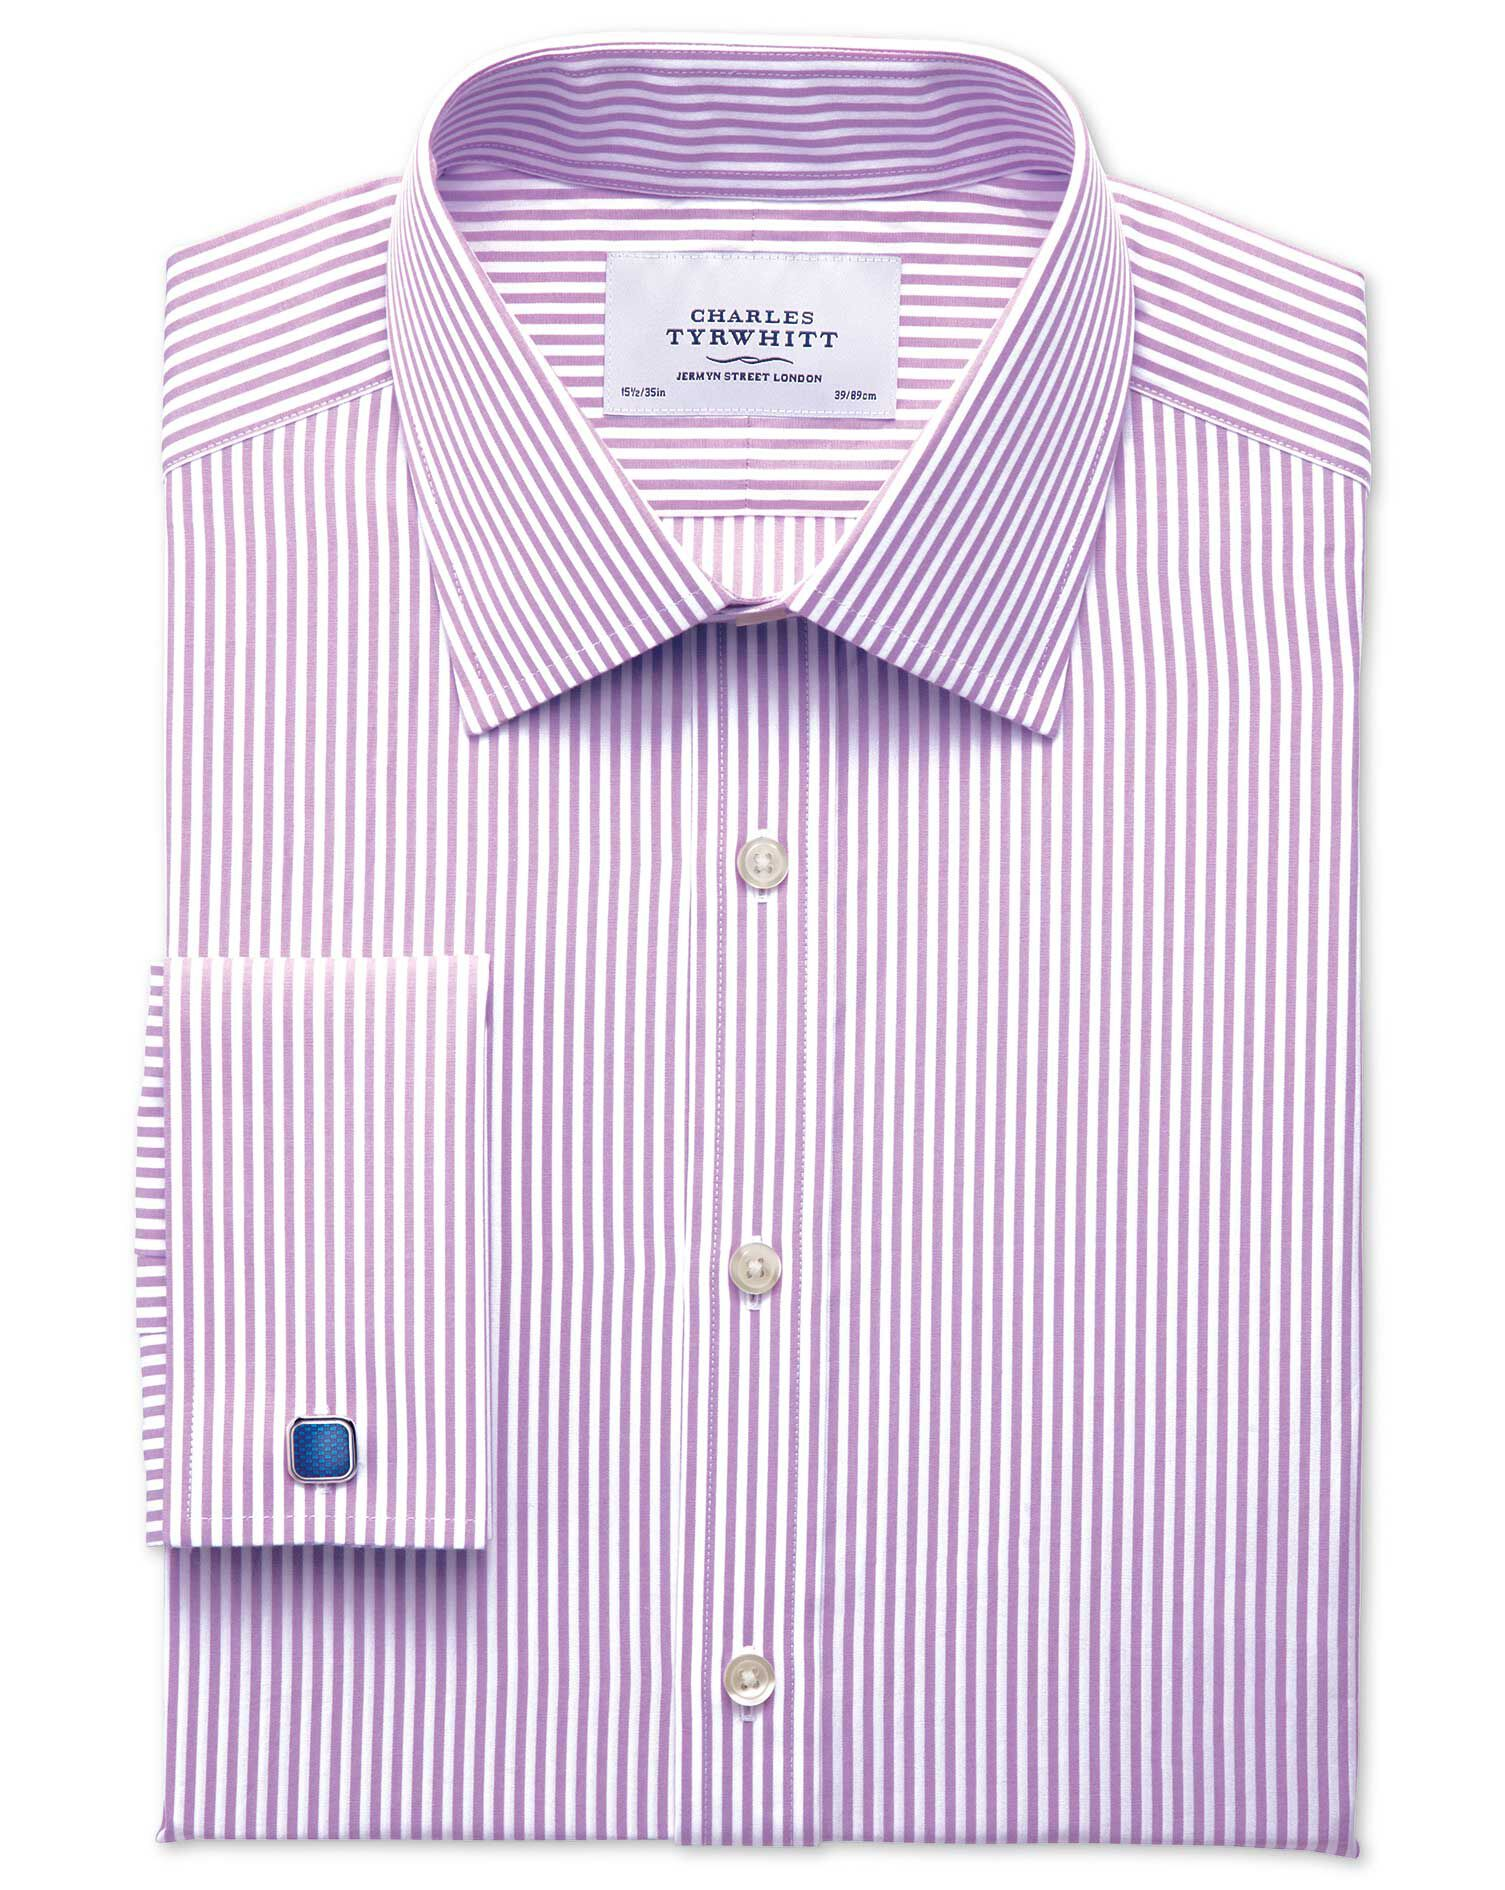 Slim Fit Bengal Stripe Lilac Cotton Formal Shirt Single Cuff Size 16.5/38 by Charles Tyrwhitt